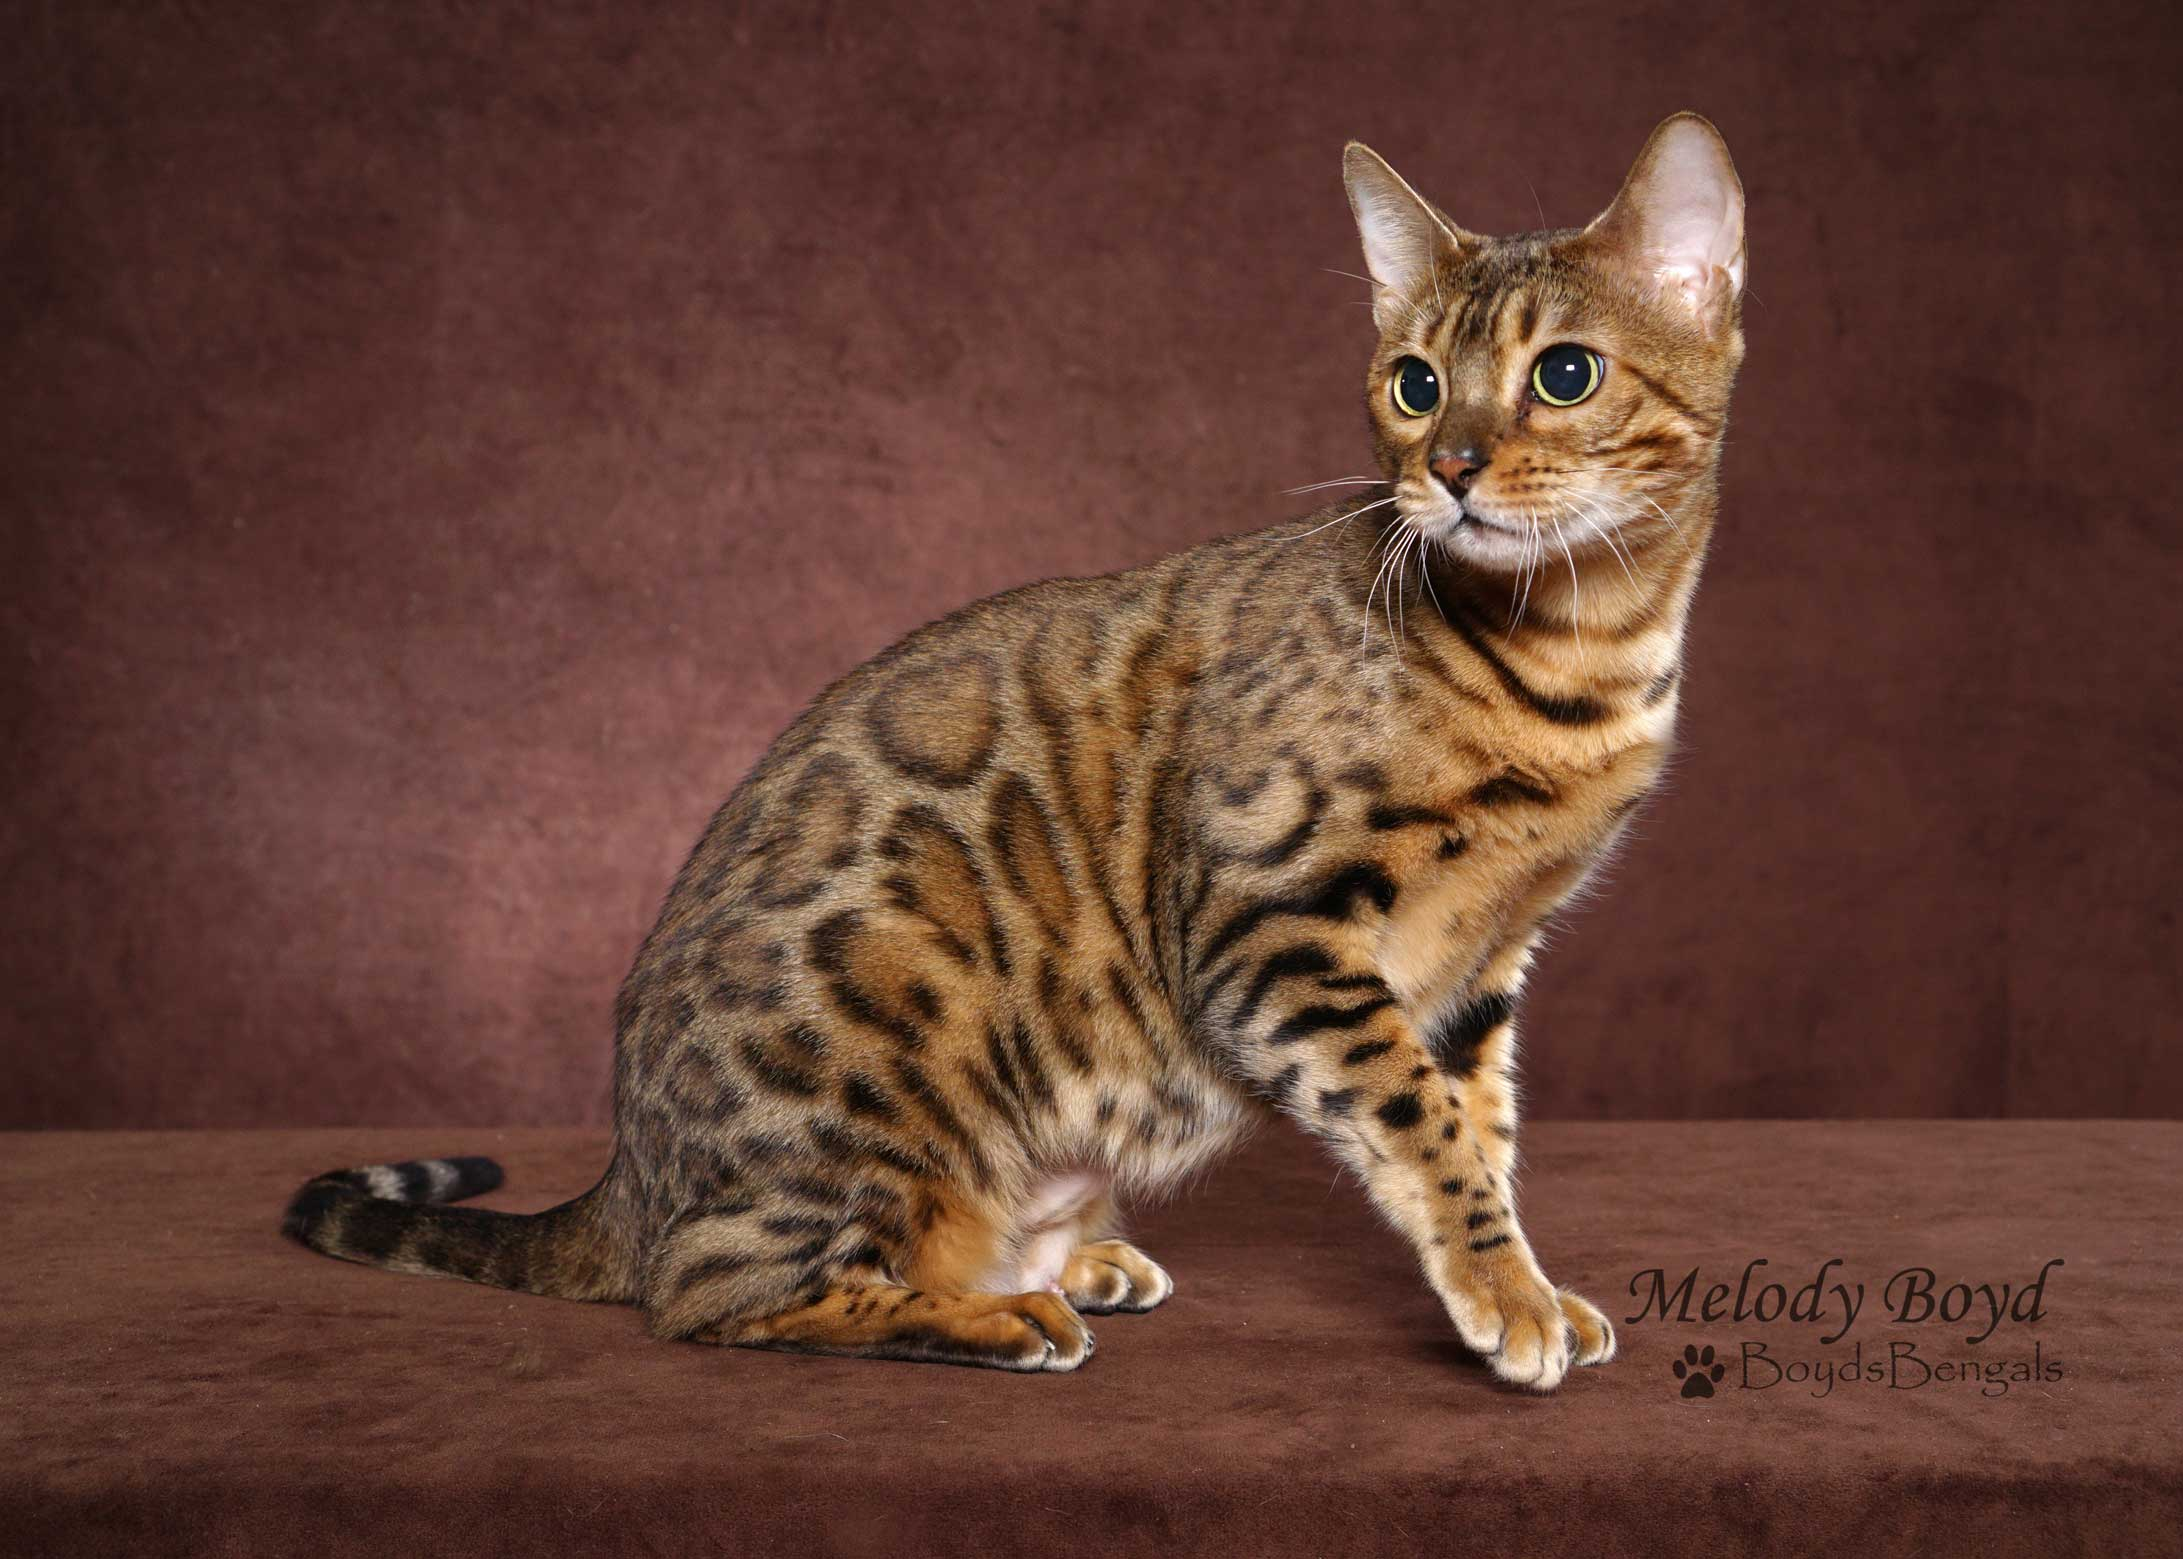 abbysinian adult cats for sale